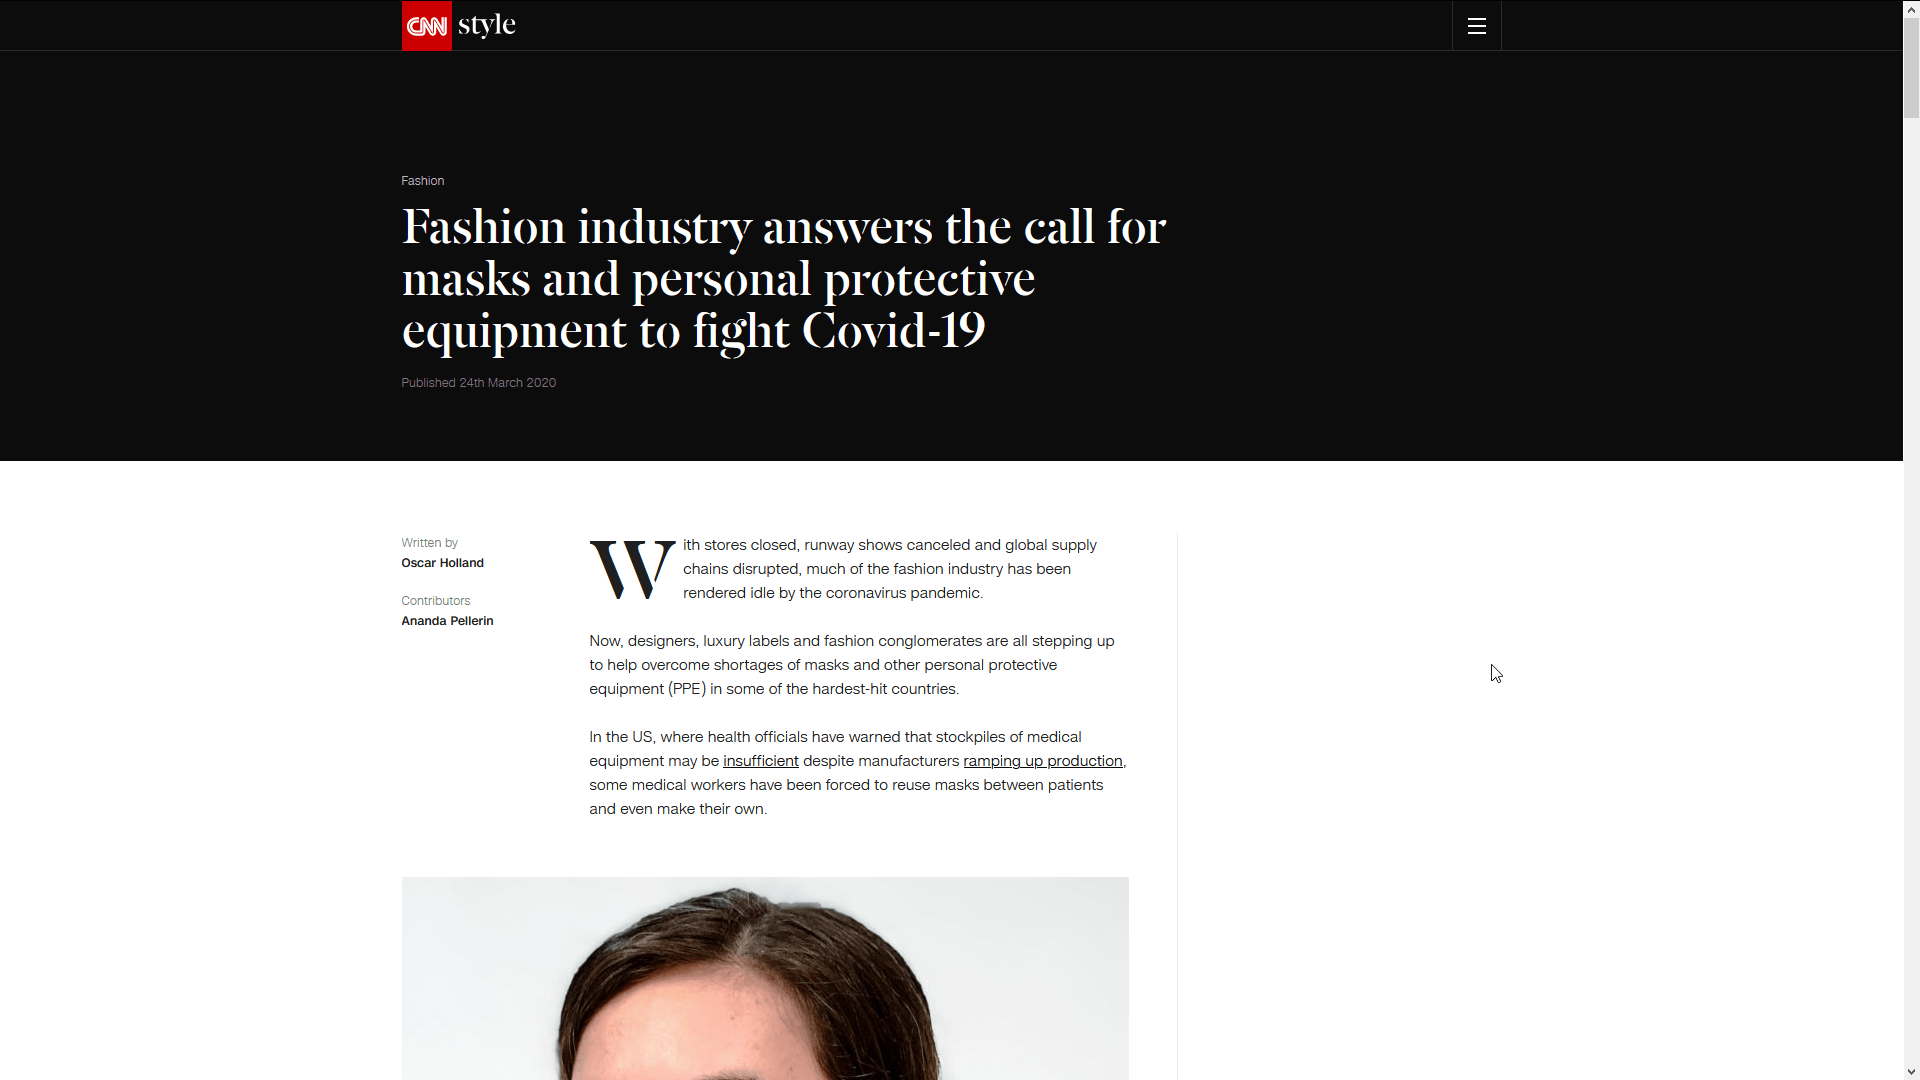 Fashion industry answers the call for masks and personal protective equipment to fight Covid-19